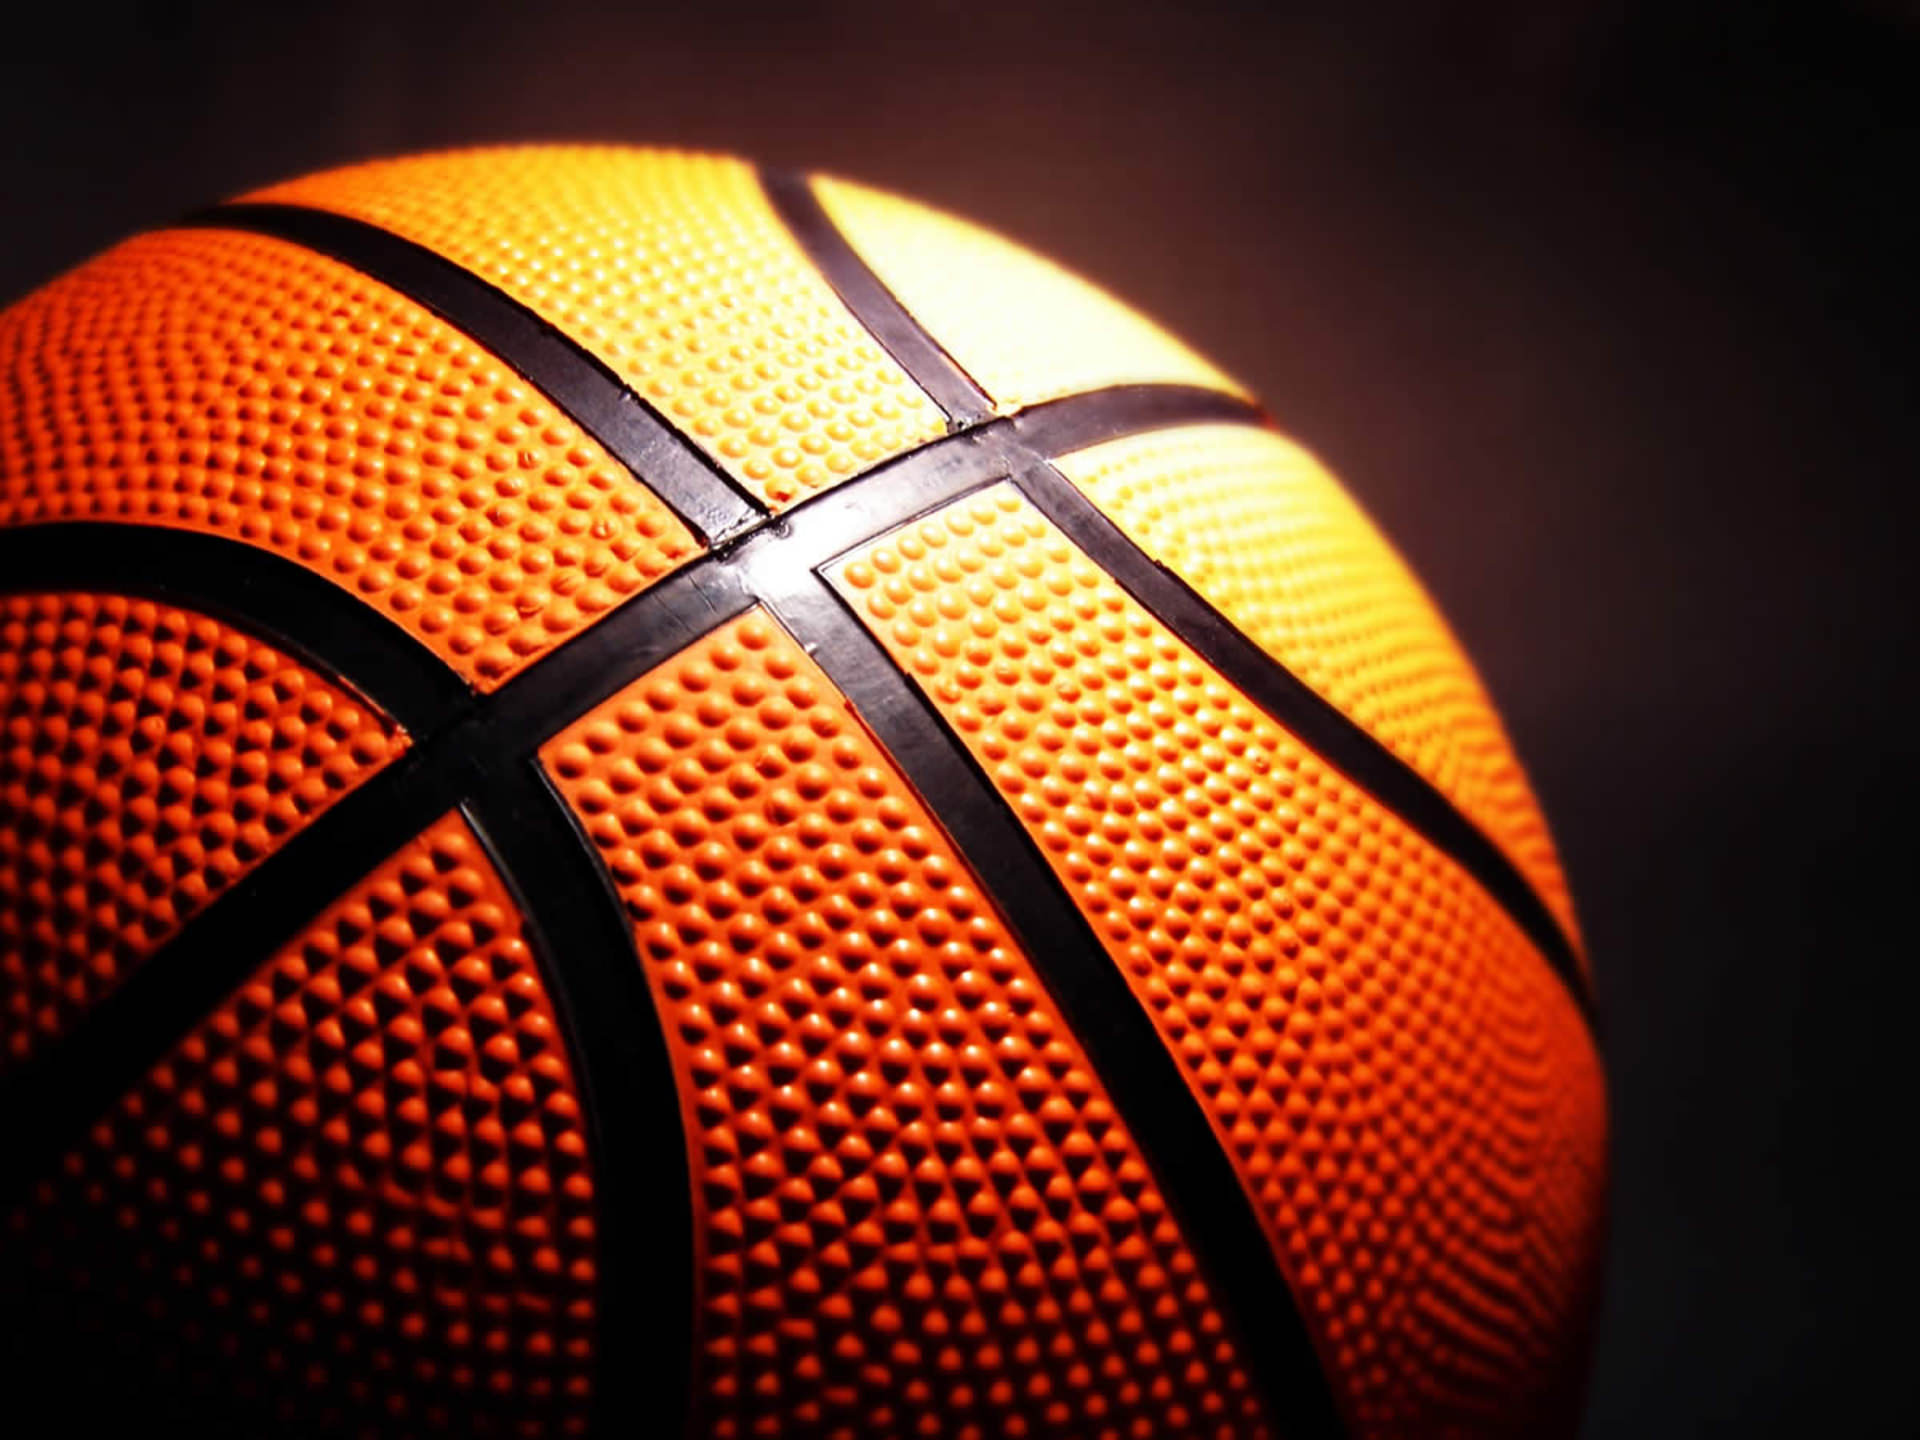 Sport Wallpaper Basketball: 30+ Basketball Backgrounds, Wallpapers, Images, Pictures